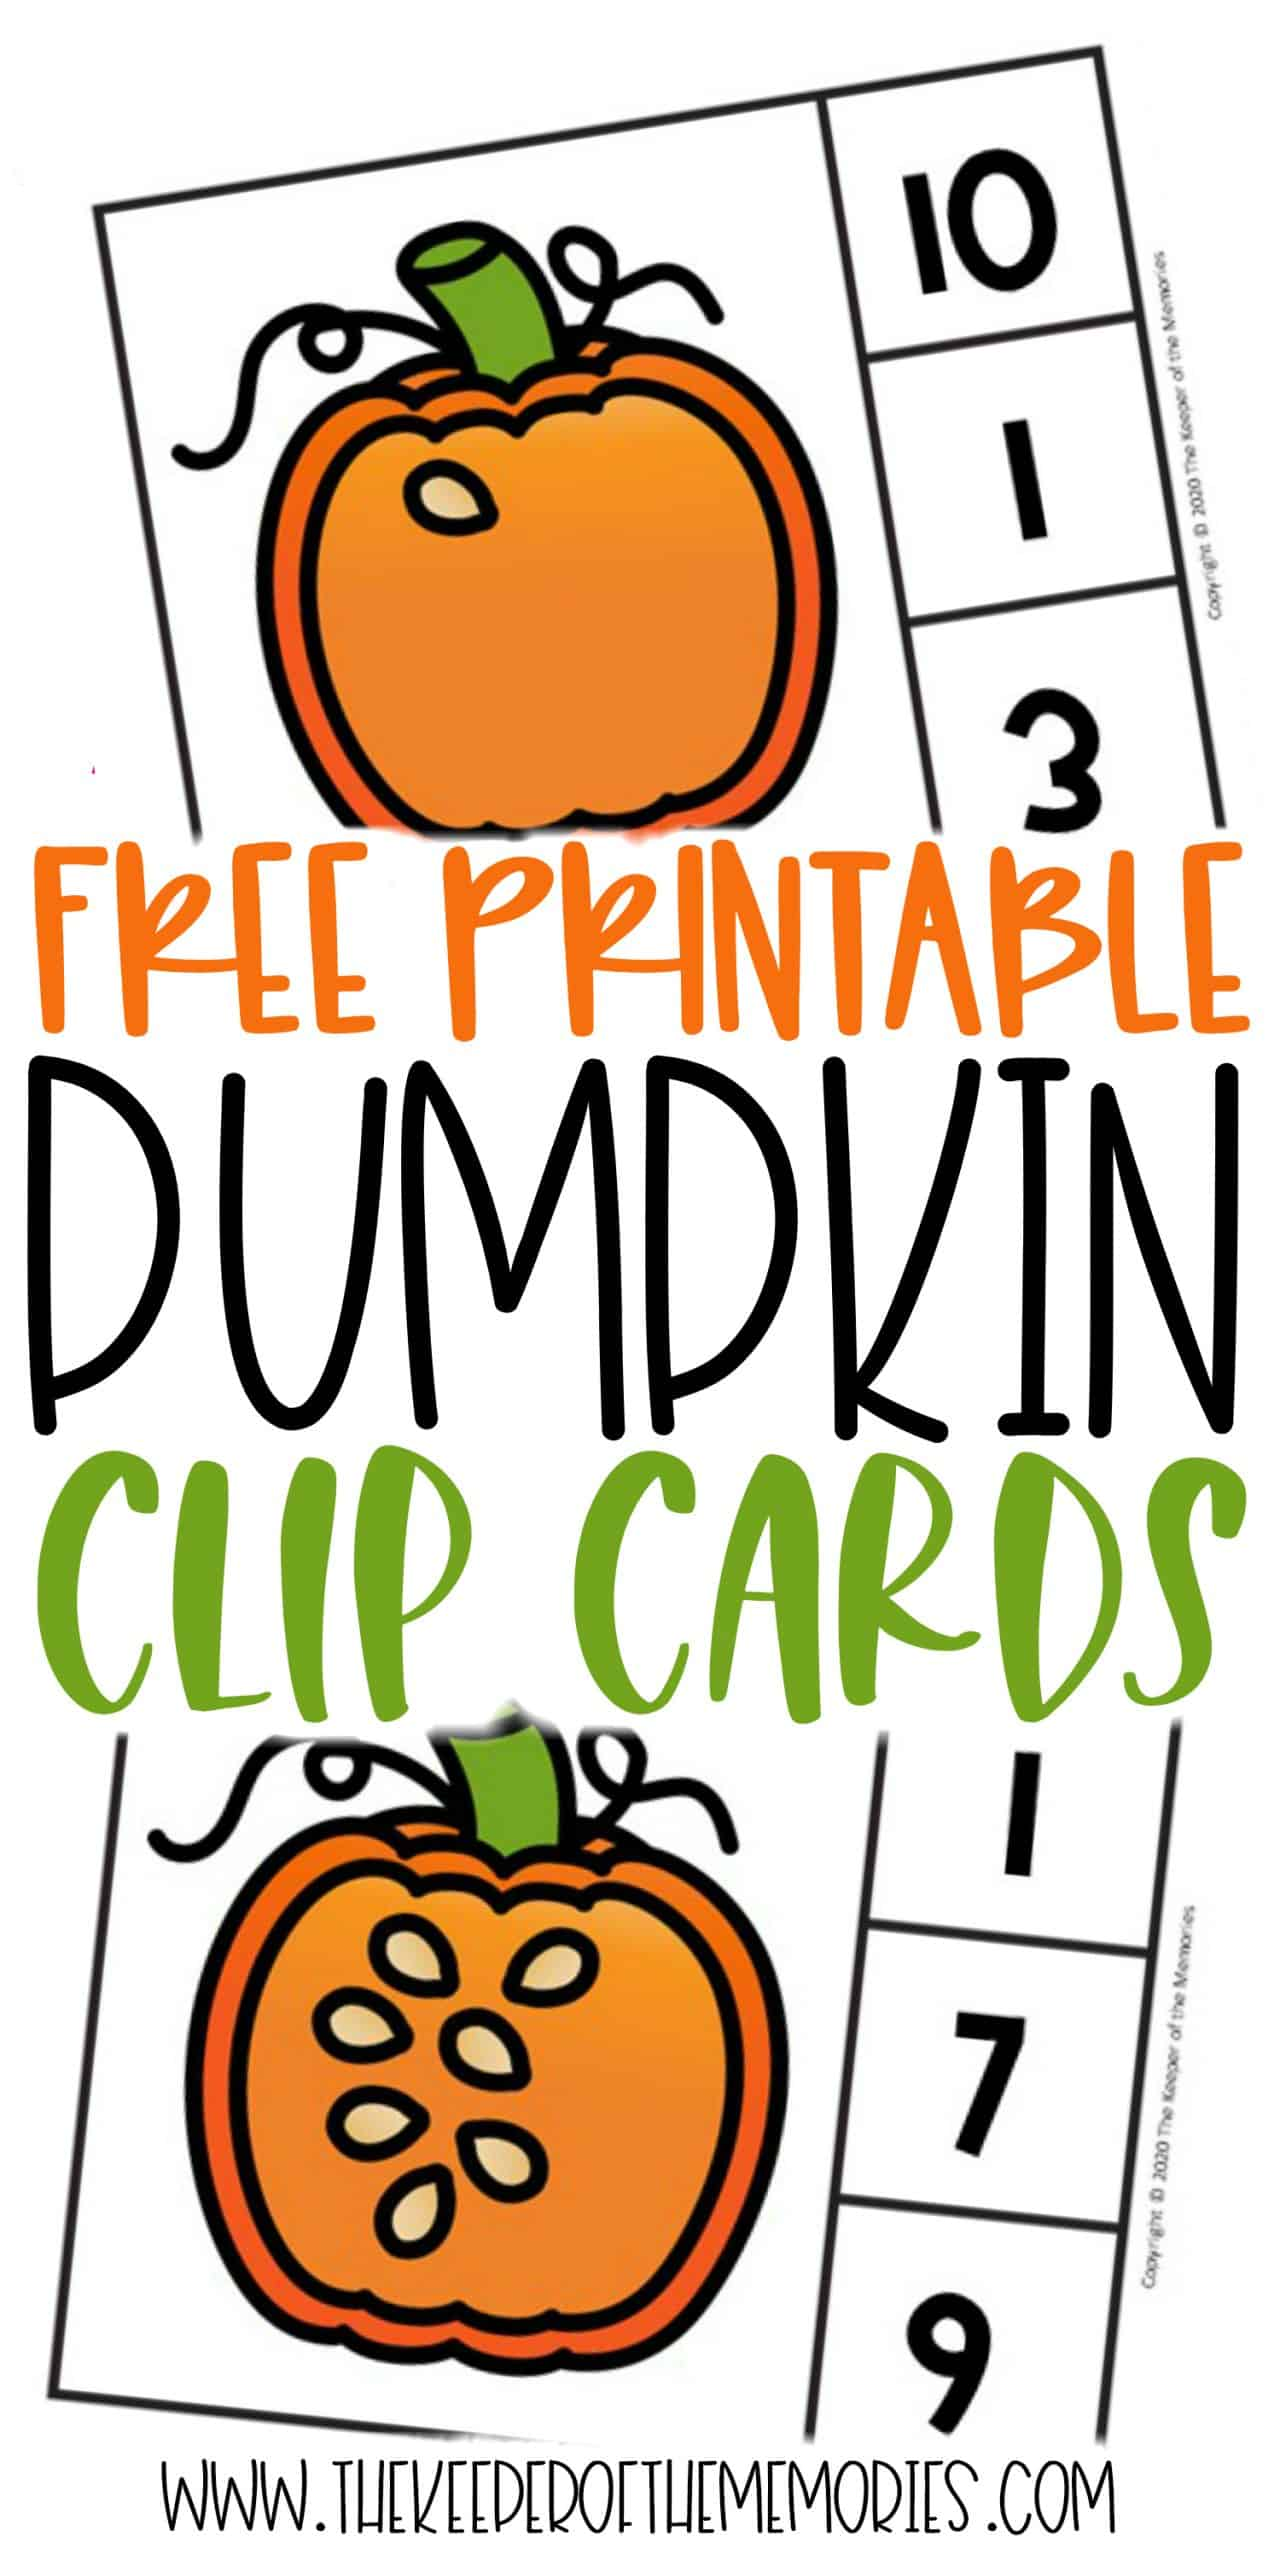 Counting Pumpkin Seeds Halloween Numbers Printable Clip Cards